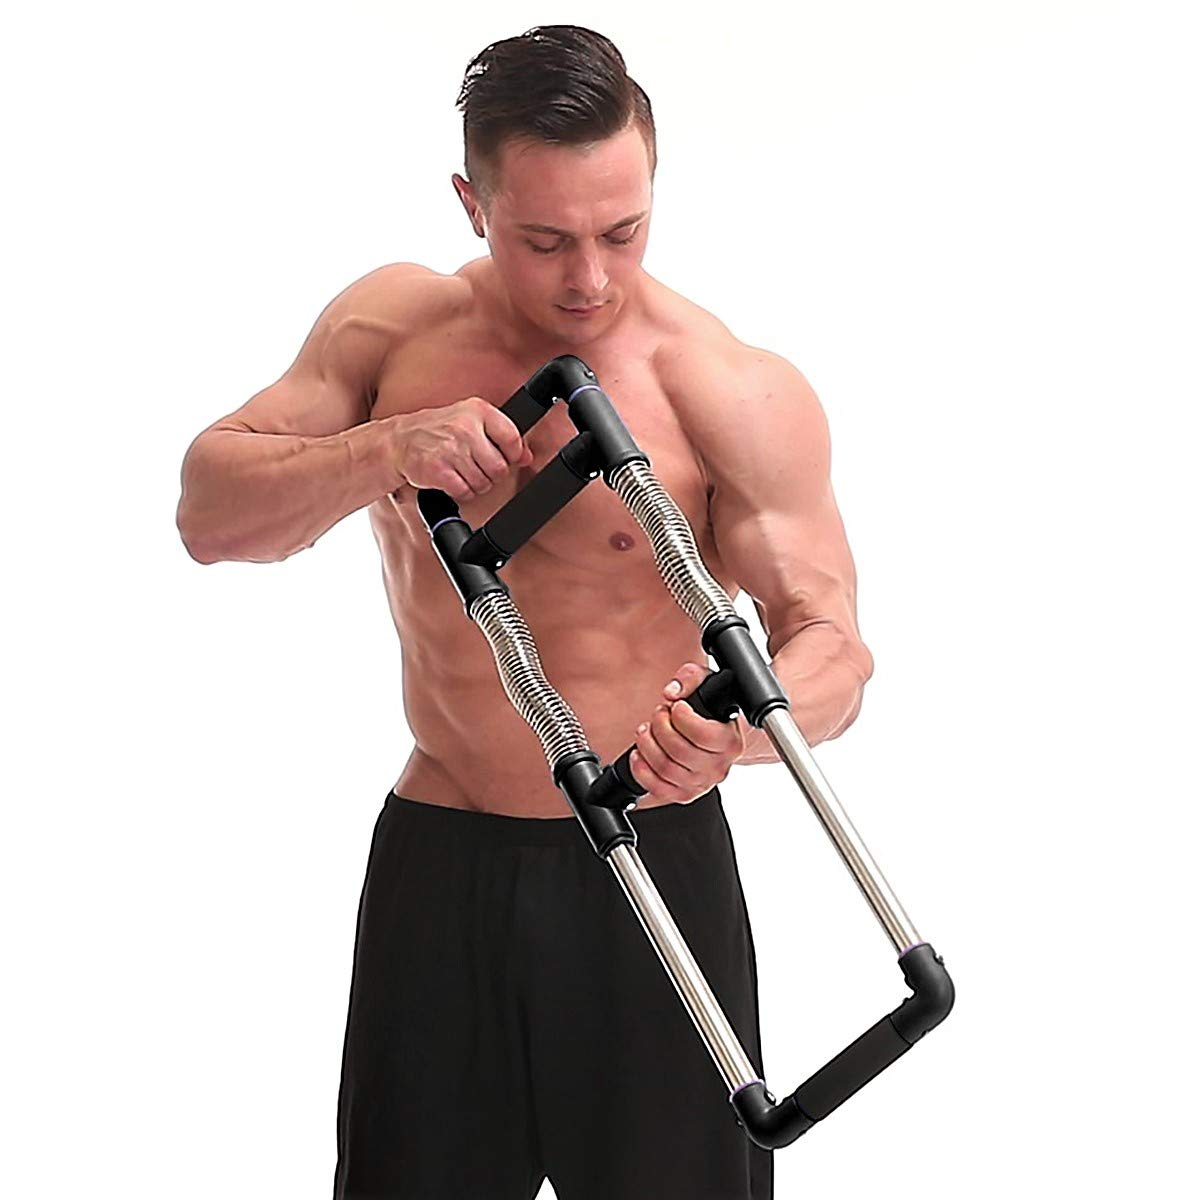 GoFitness Super Push Down Bar - Total Upper Body Workout Equipment, Press Down Machine - Chest Workout, Strength Training, Home Fitness by GoFitness (Image #7)